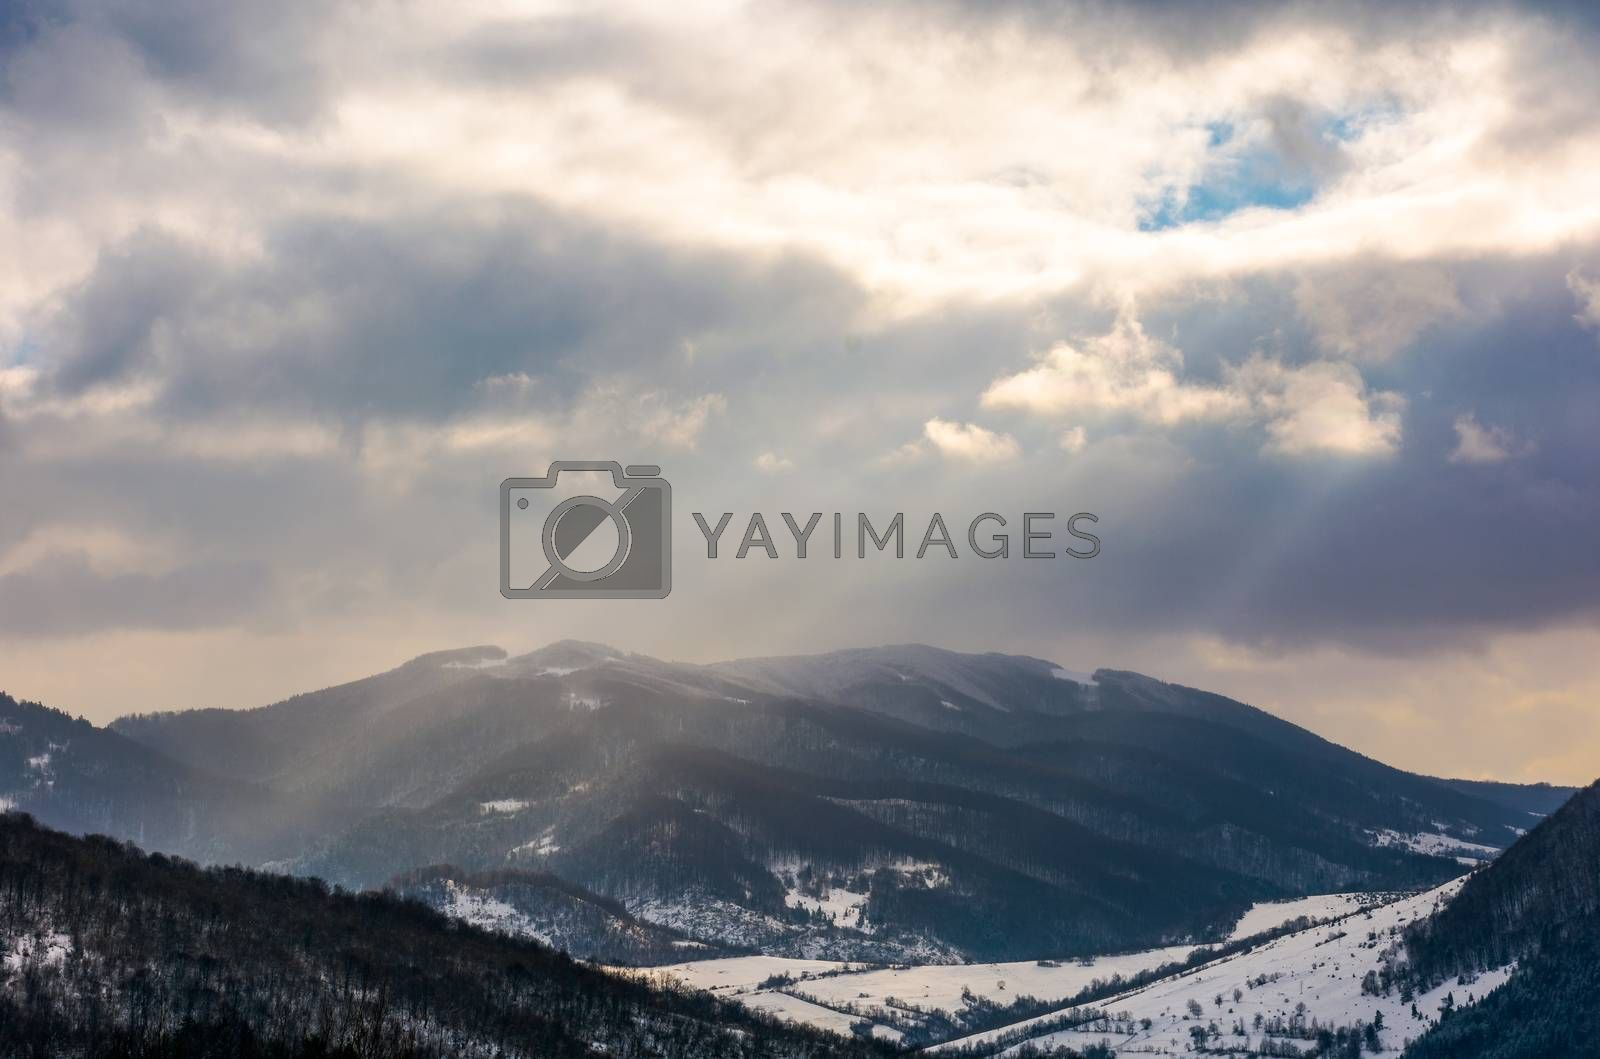 stormy winter sky over rural area in mountains near spruce forest